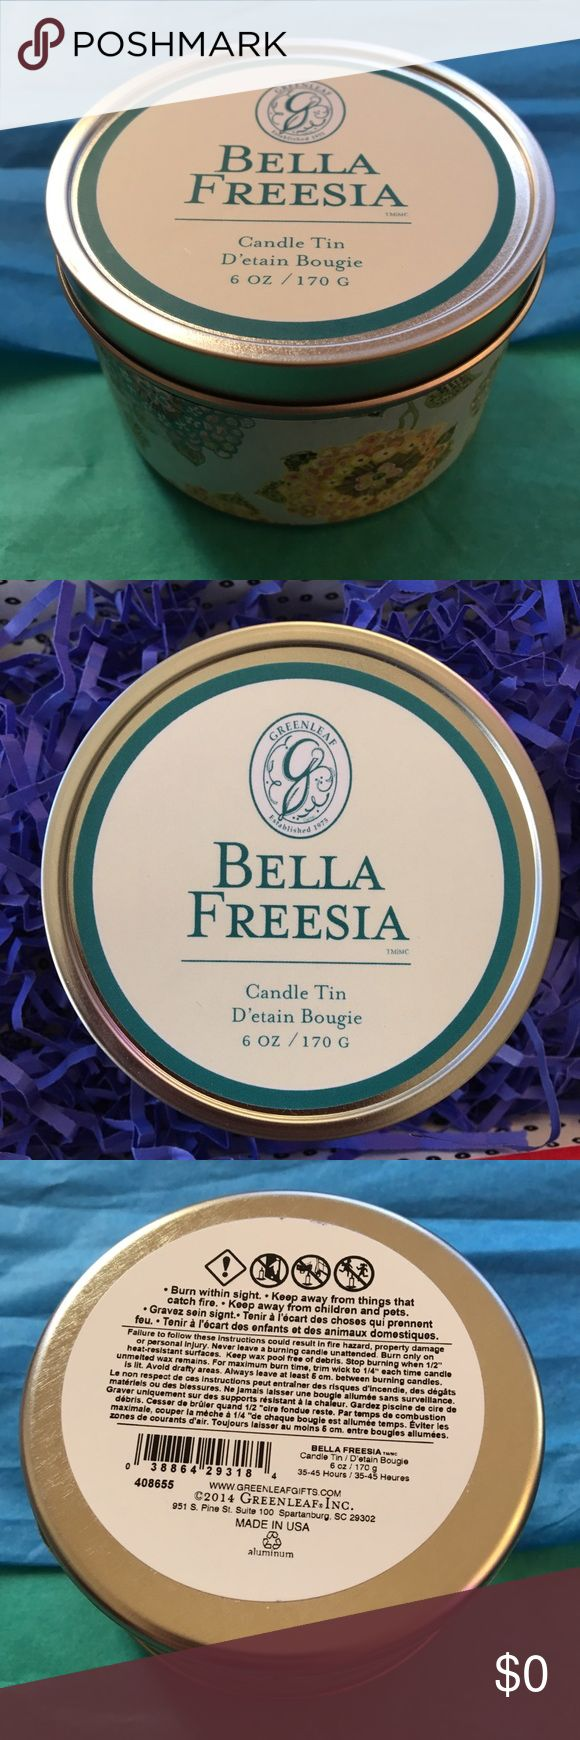 ✨🌺🌸 Bella Freesia Signature Candle Tin 🌸🌺✨ ✨🌺🌸 Bella Freesia Signature Candle Tin 🌸🌺✨ 6 oz. by Greenleaf. Natural soy blend wax that is specially formulated for maximum fragrance & a long clean burn. Lovely freesia & delicate white tea beautifully blended with amber & cotton blossom in elegant splendor. The delightful scent is reminiscent of a relaxing day at the spa. I gave a couple of these as part of a Mother's Day gift (along with other spa-themed treasures, such as gift cards…